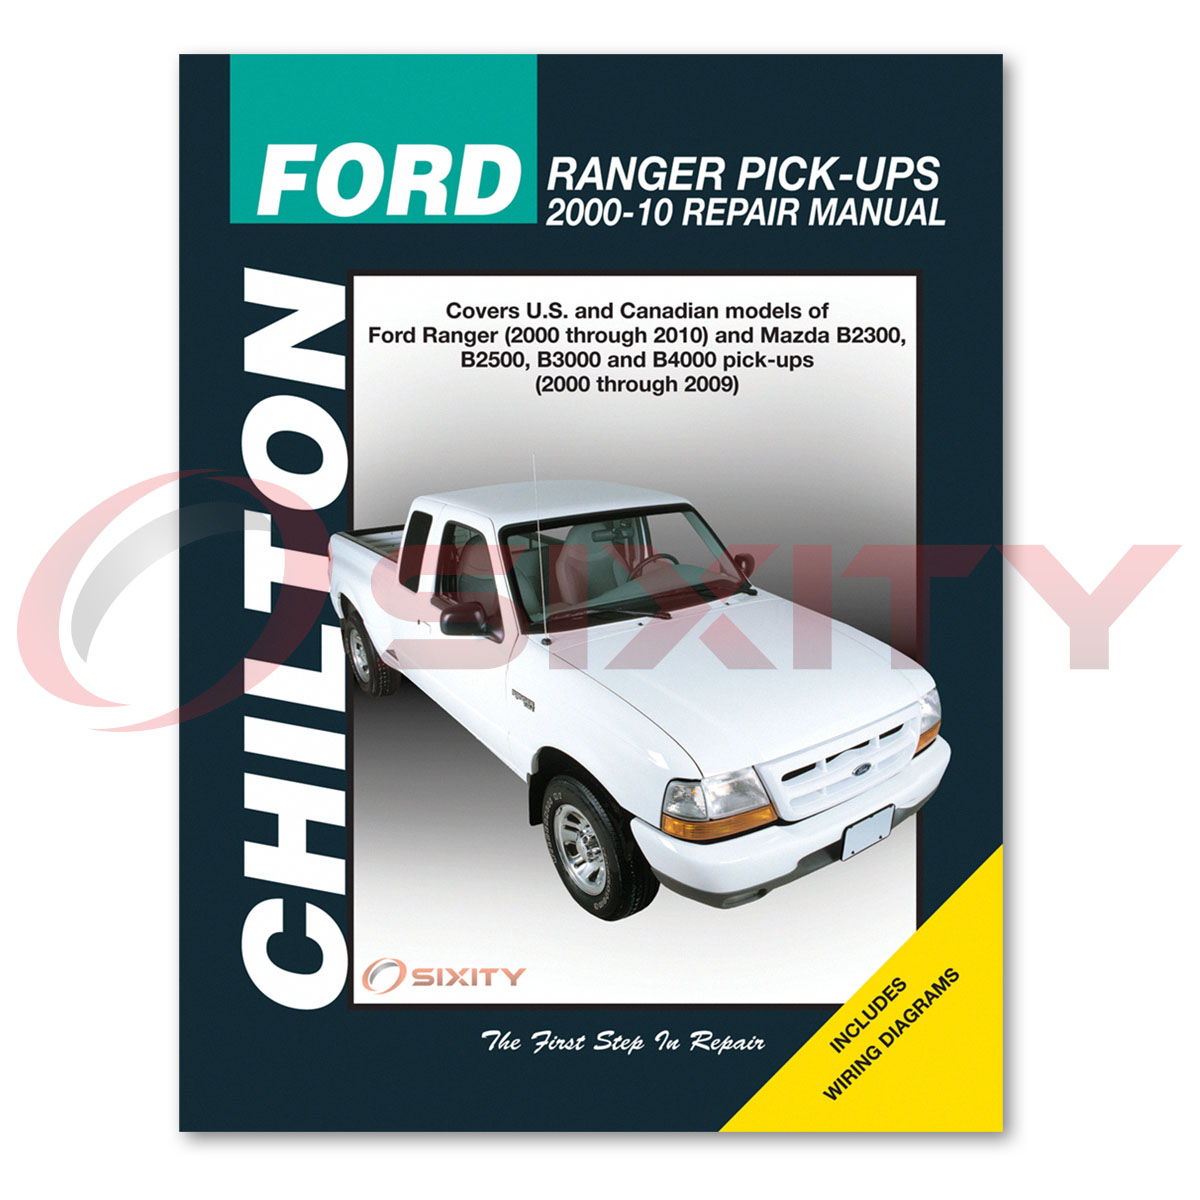 All Chevy 1997 chevy lumina owners manual : 100+ [ 1997 Chevy Lumina Car Service Shop Manual ]   How To ...